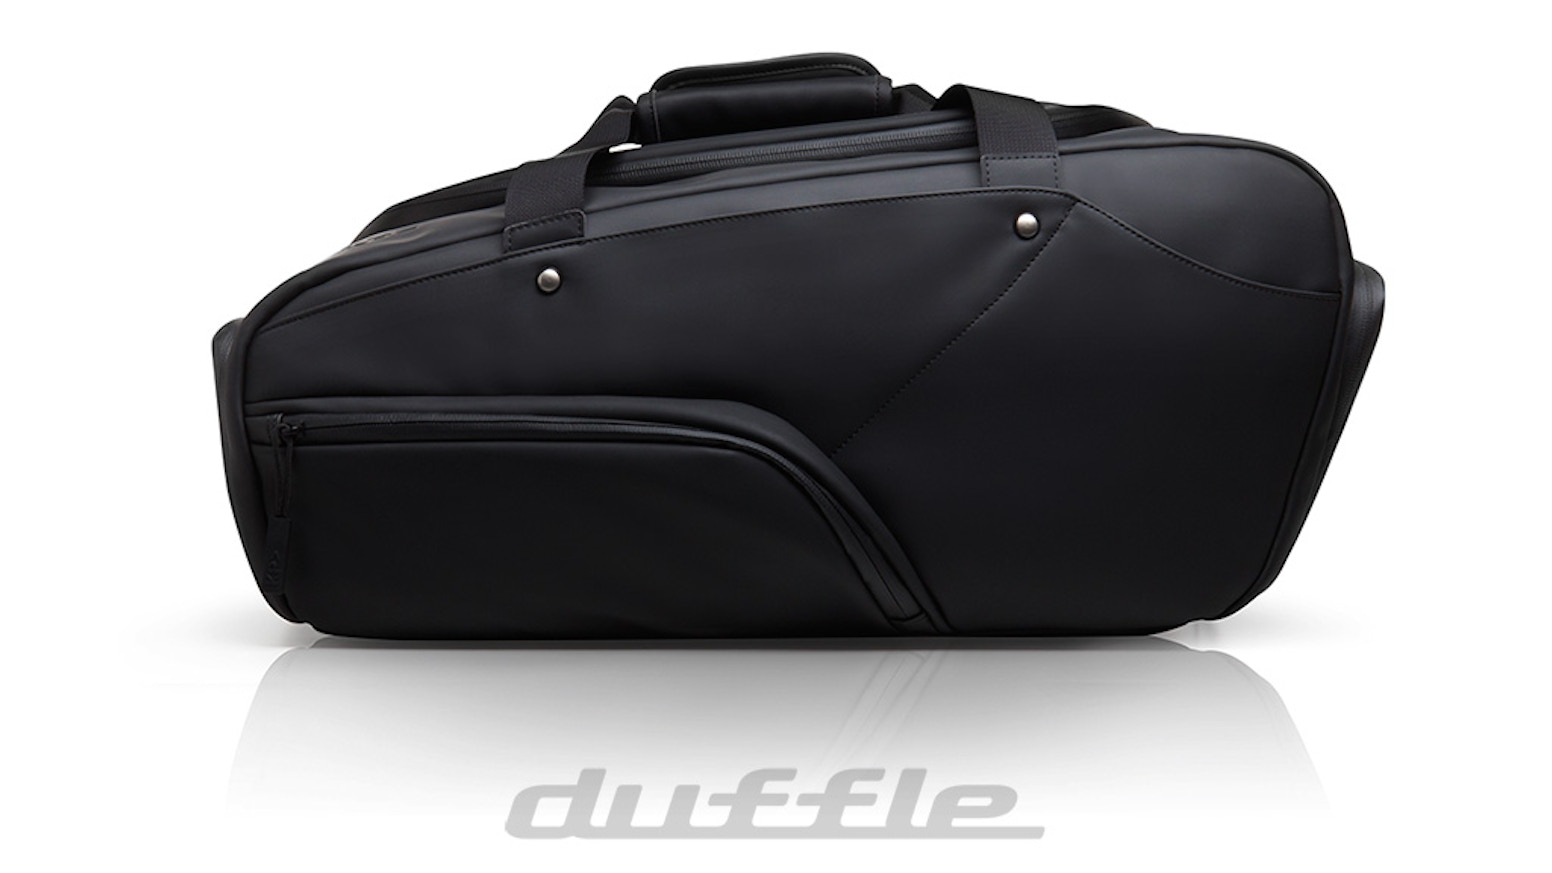 A bag that not only has a stunning appearance but offers functionality and performance second to none.